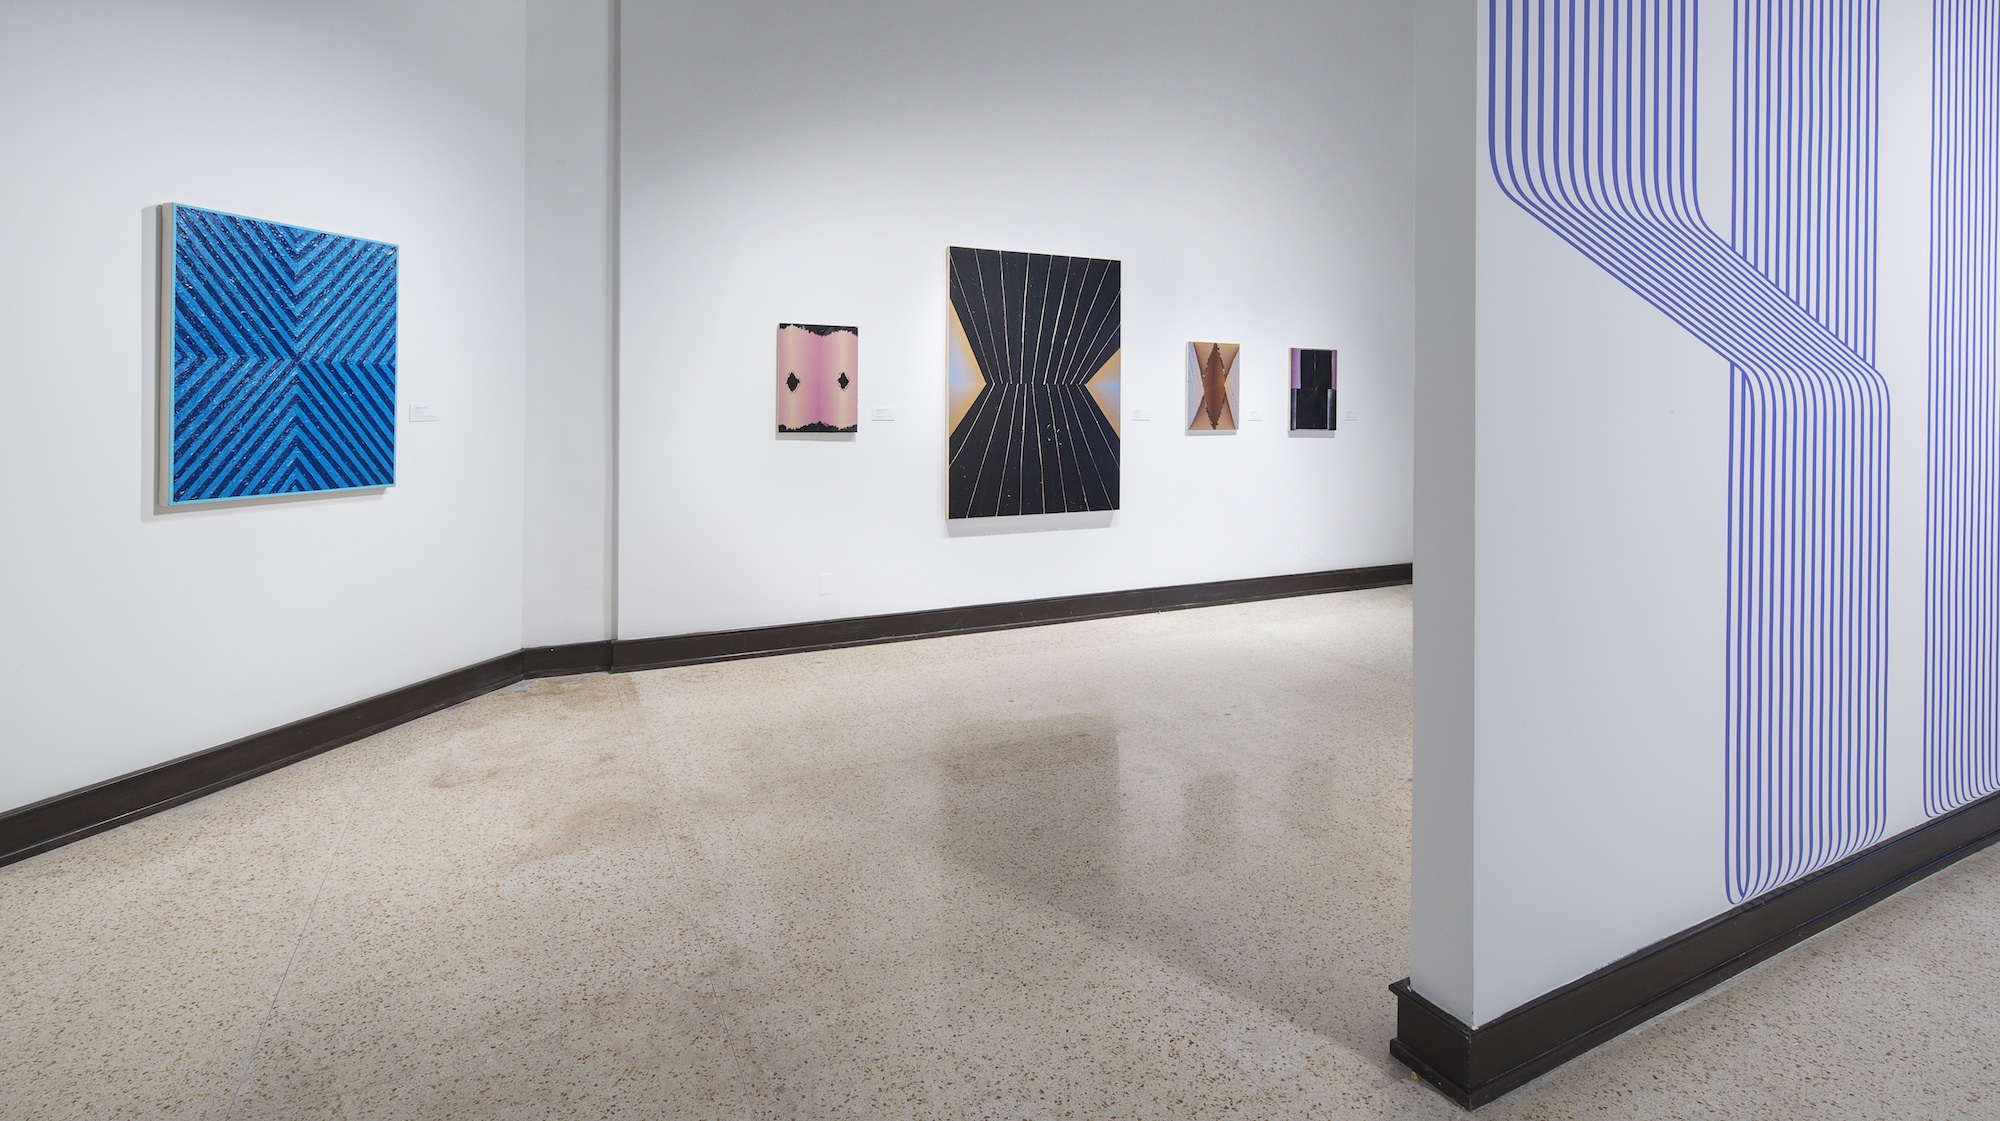 Russell Tyler (left), Rafael Vega (center), Terry Taggerty (right).  Linear Abstraction , Gutstein Gallery, Savannah College of Art and Design, Savannah, Georgia. Courtesy of the Savannah College of Art and Design. 2015. Photo: Marc Newton